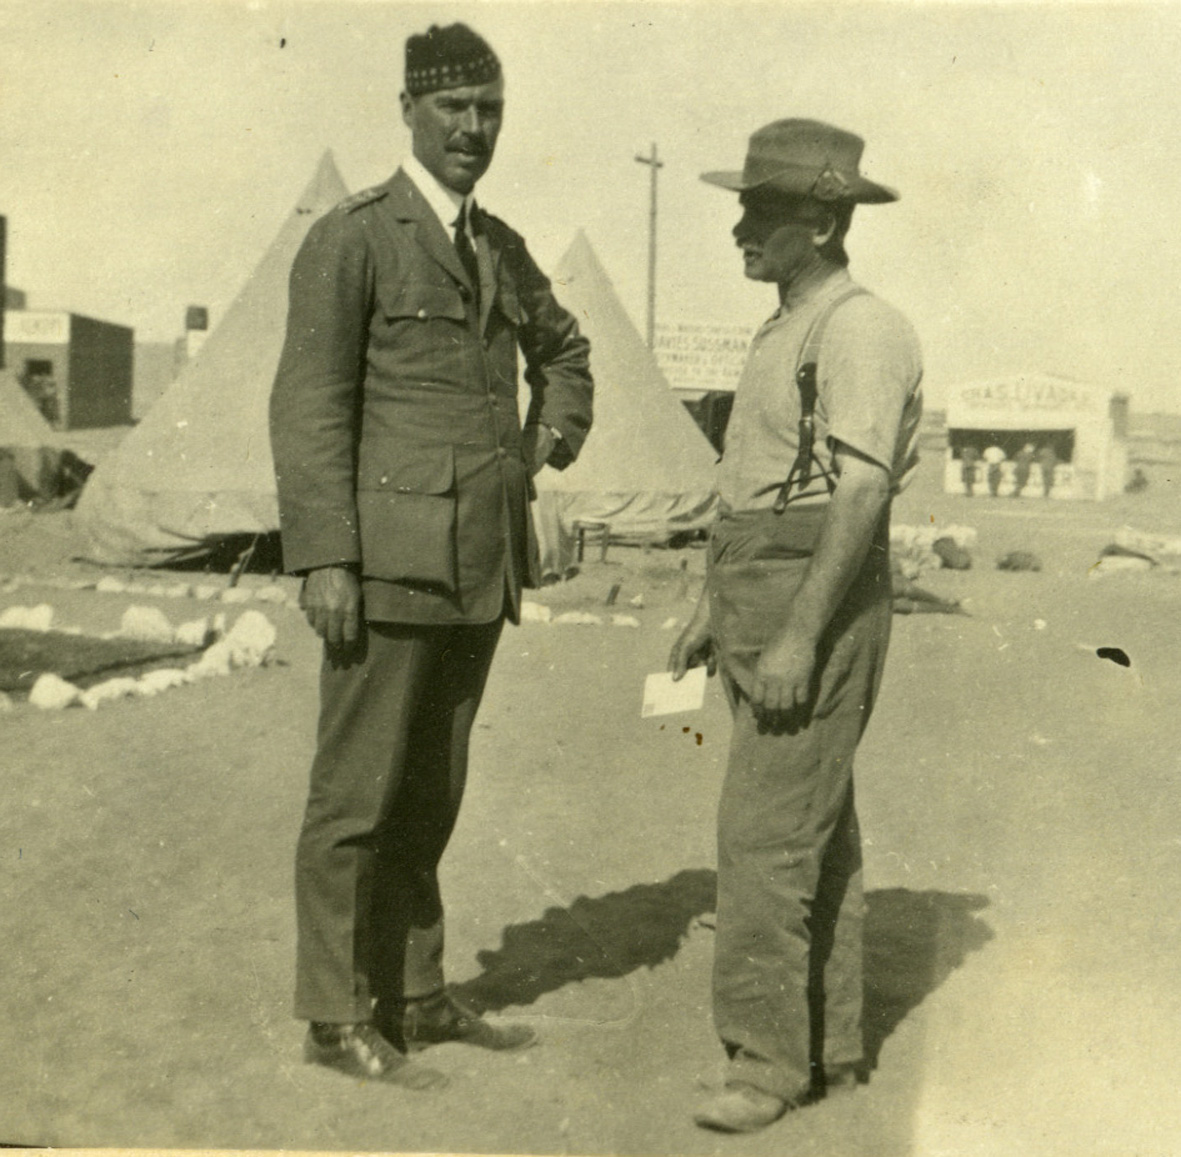 Captain Sydney Clement [left] at the 5th Batt. camp in Egypt early 1915